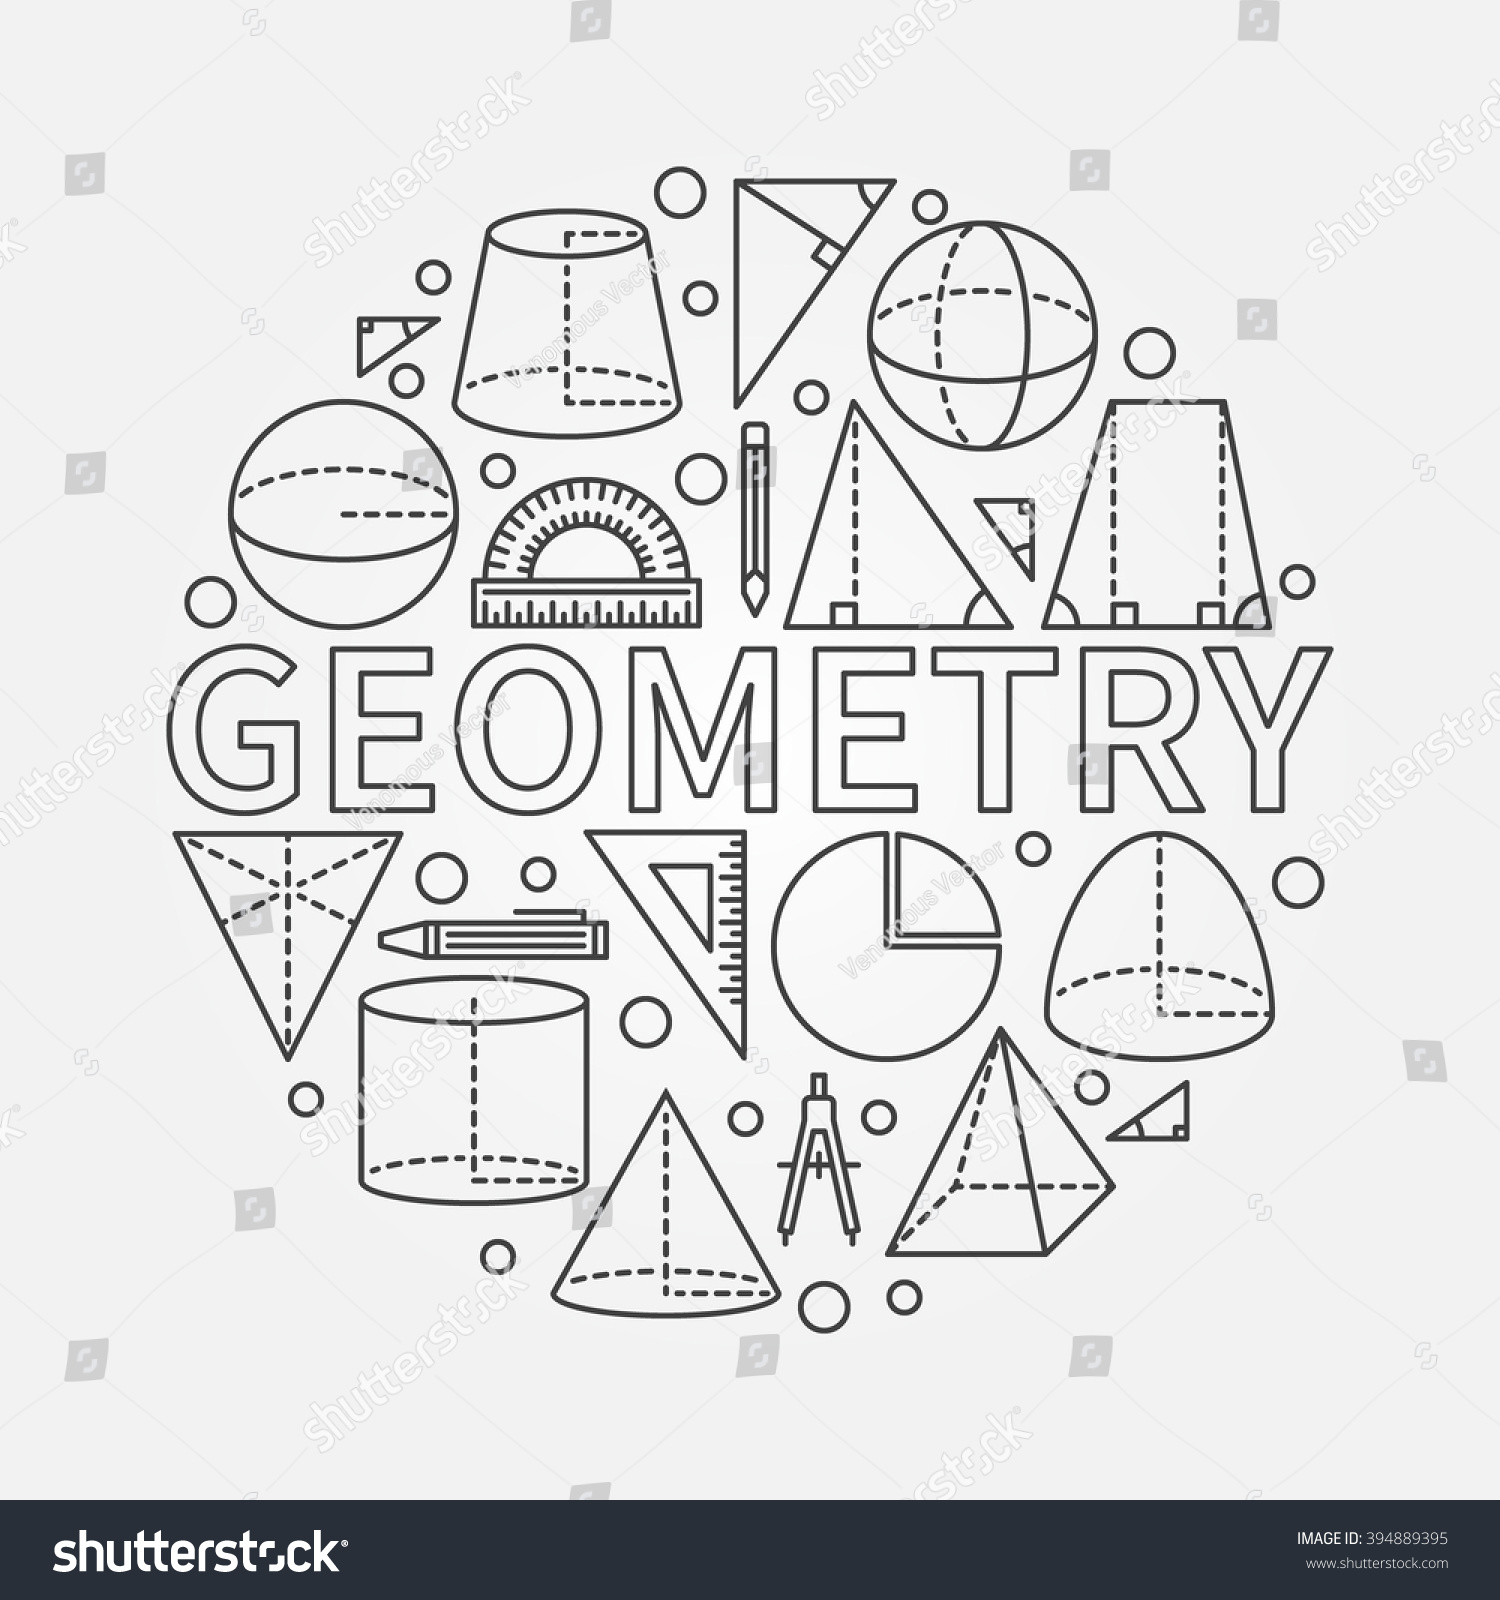 geometry round symbol vector math circle stock vector royalty free 394889395 https www shutterstock com image vector geometry round symbol vector math circle 394889395